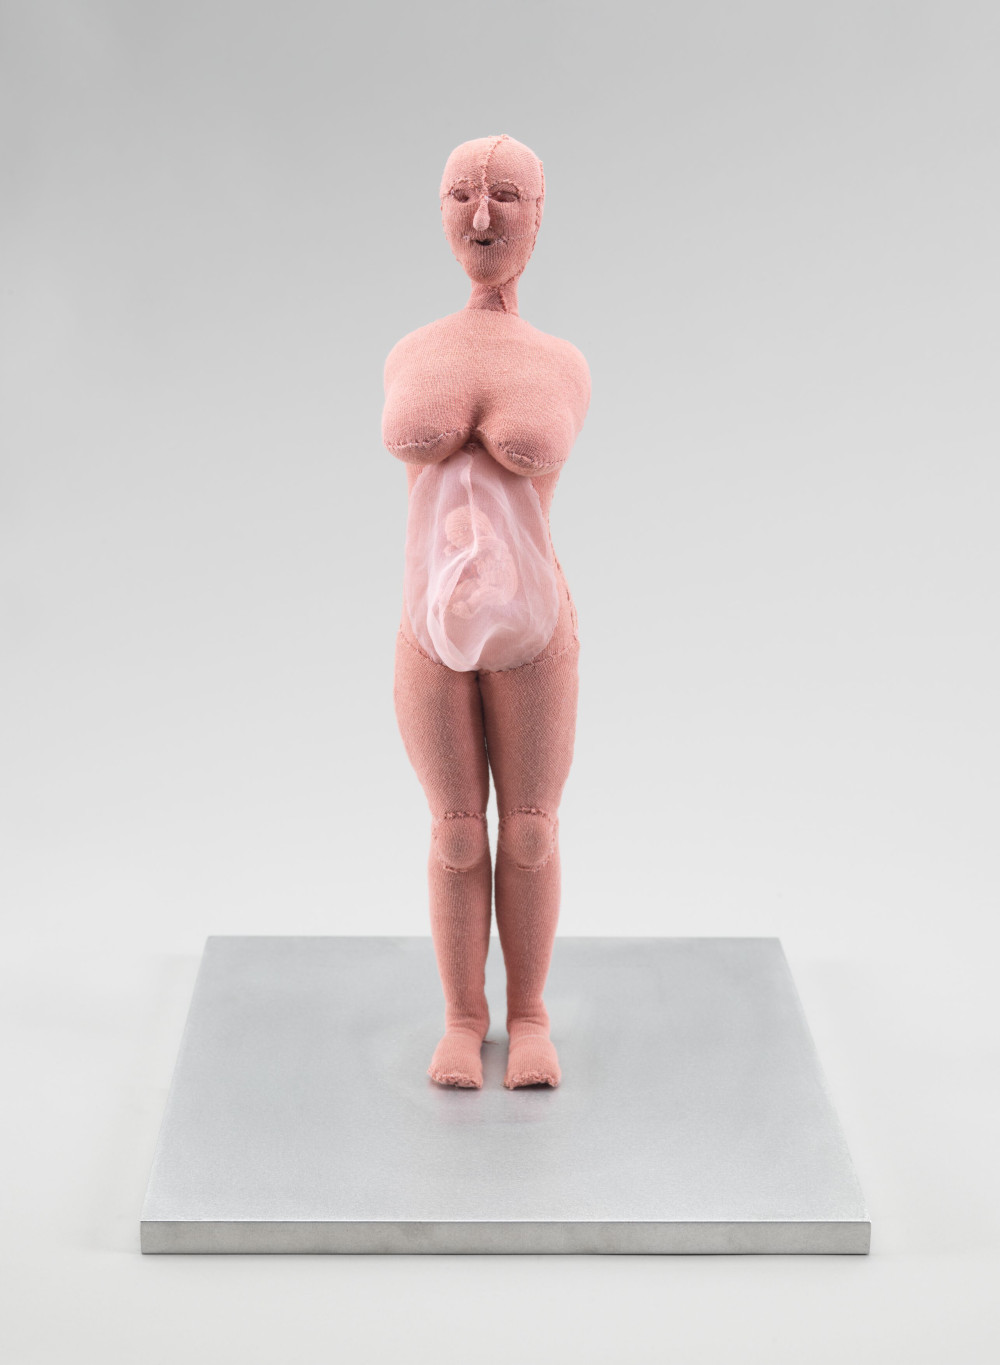 Louise Bourgeois, Umbilical Cord, 2003. Fabric and stainless steel 44.8 x 30.5 x 30.5 cm / 17 5/8 x 12 x 12 in. Stainless steel, glass and wood vitrine: 177.8 x 60.9 x 60.9 cm / 70 x 24 x 24 inches © The Easton Foundation / 2019, ProLitteris, Zurich. Courtesy the Foundation and Hauser & Wirth. Photo: Christopher Burke